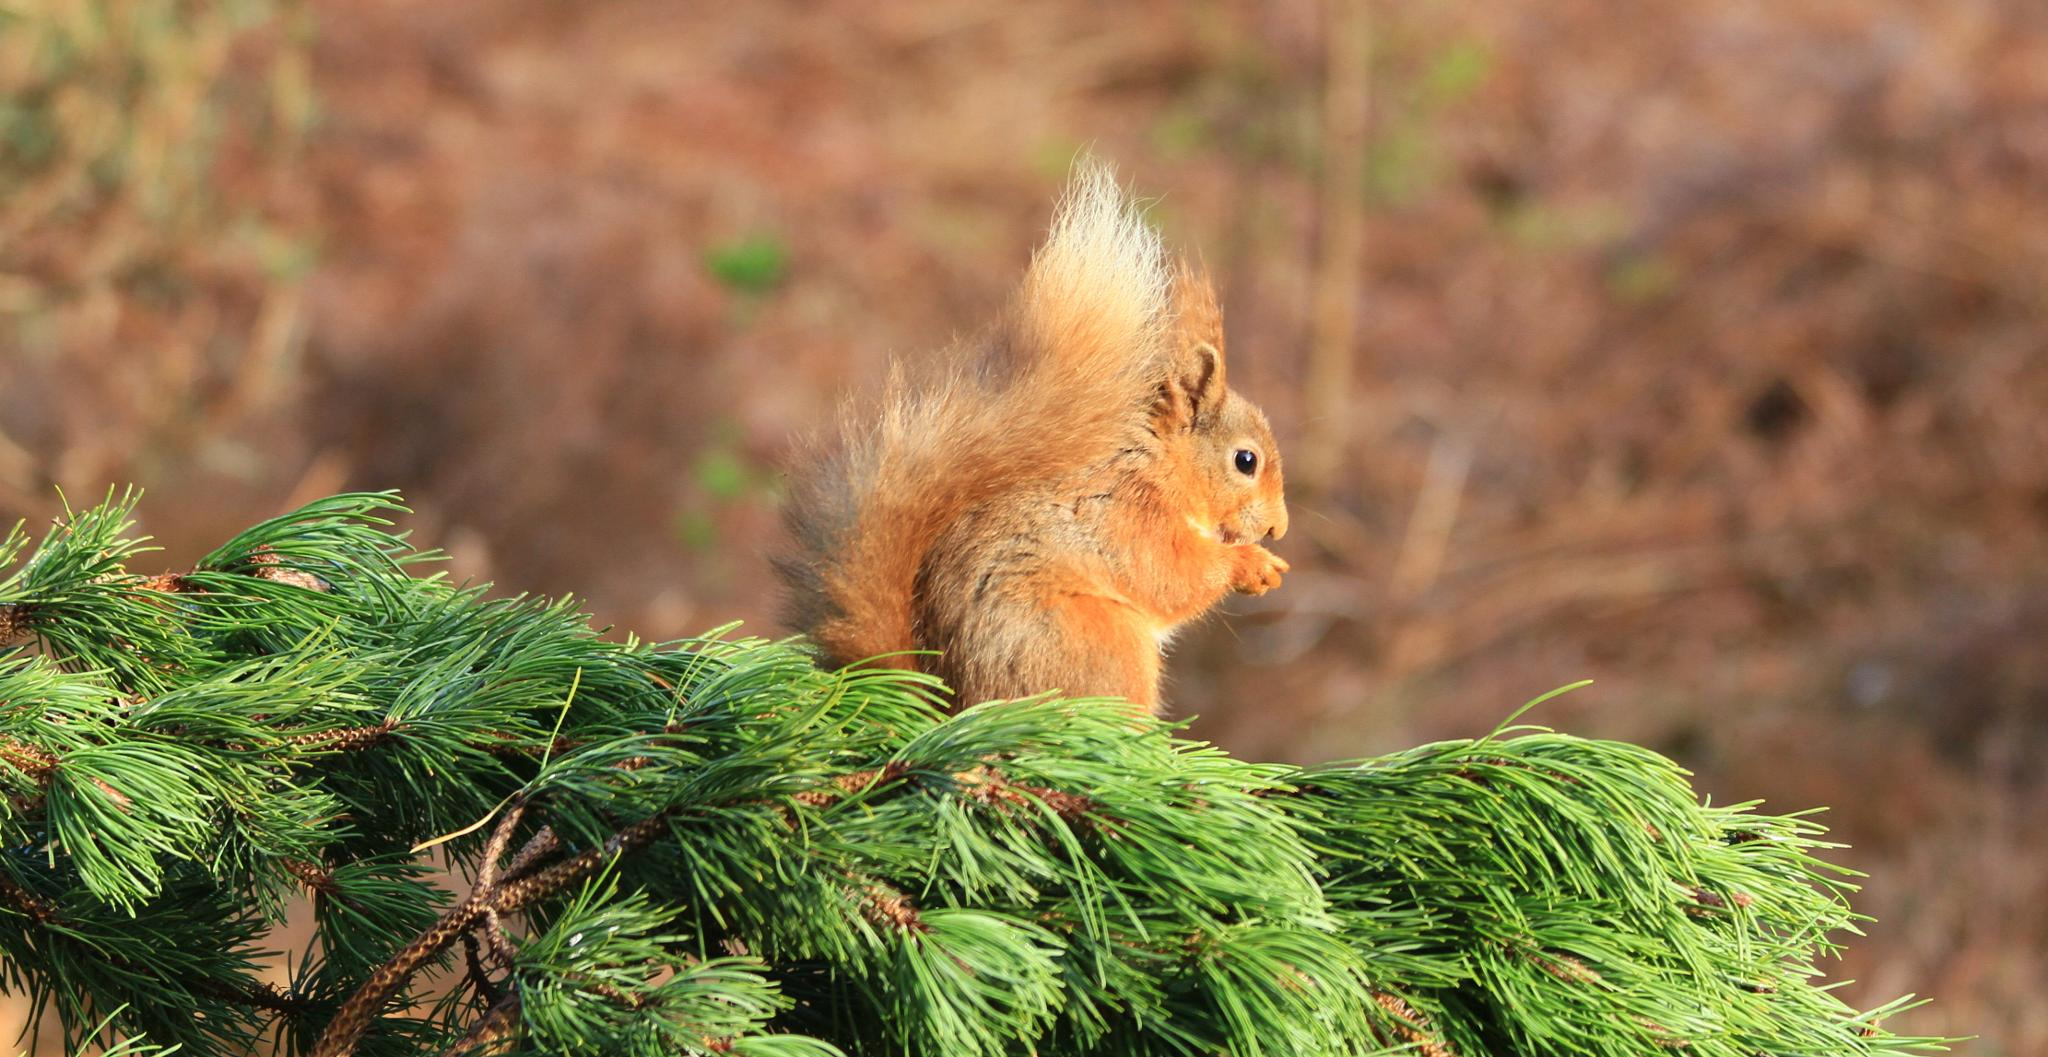 Red Squirrel on a pine branch by rsww19